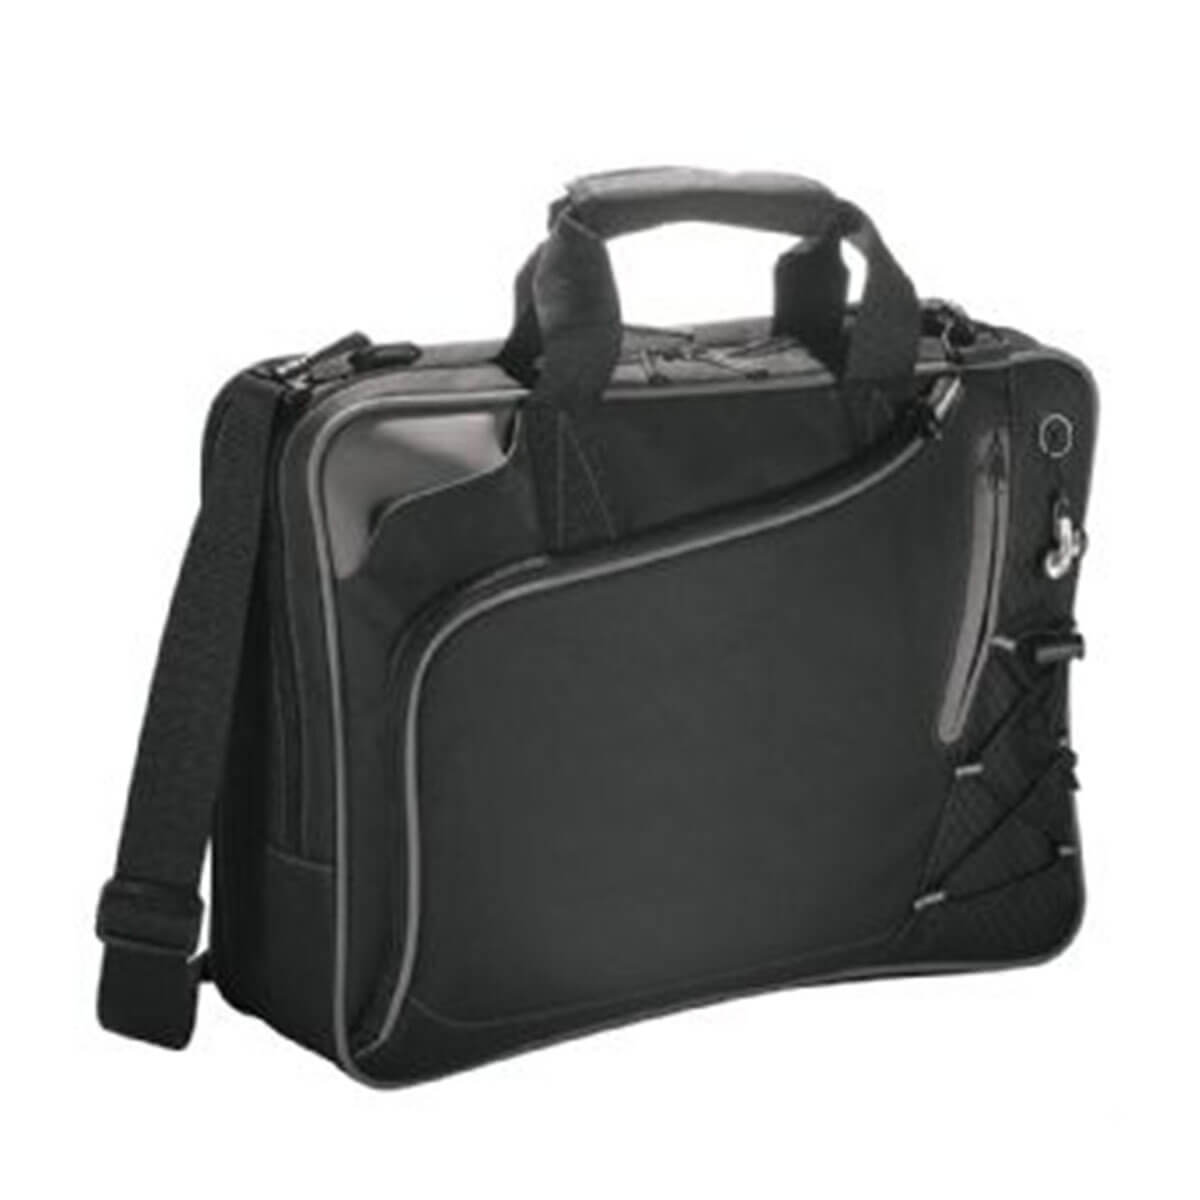 Summit Checkpoint-Friendly Computer-Case-Black with Grey Trim.